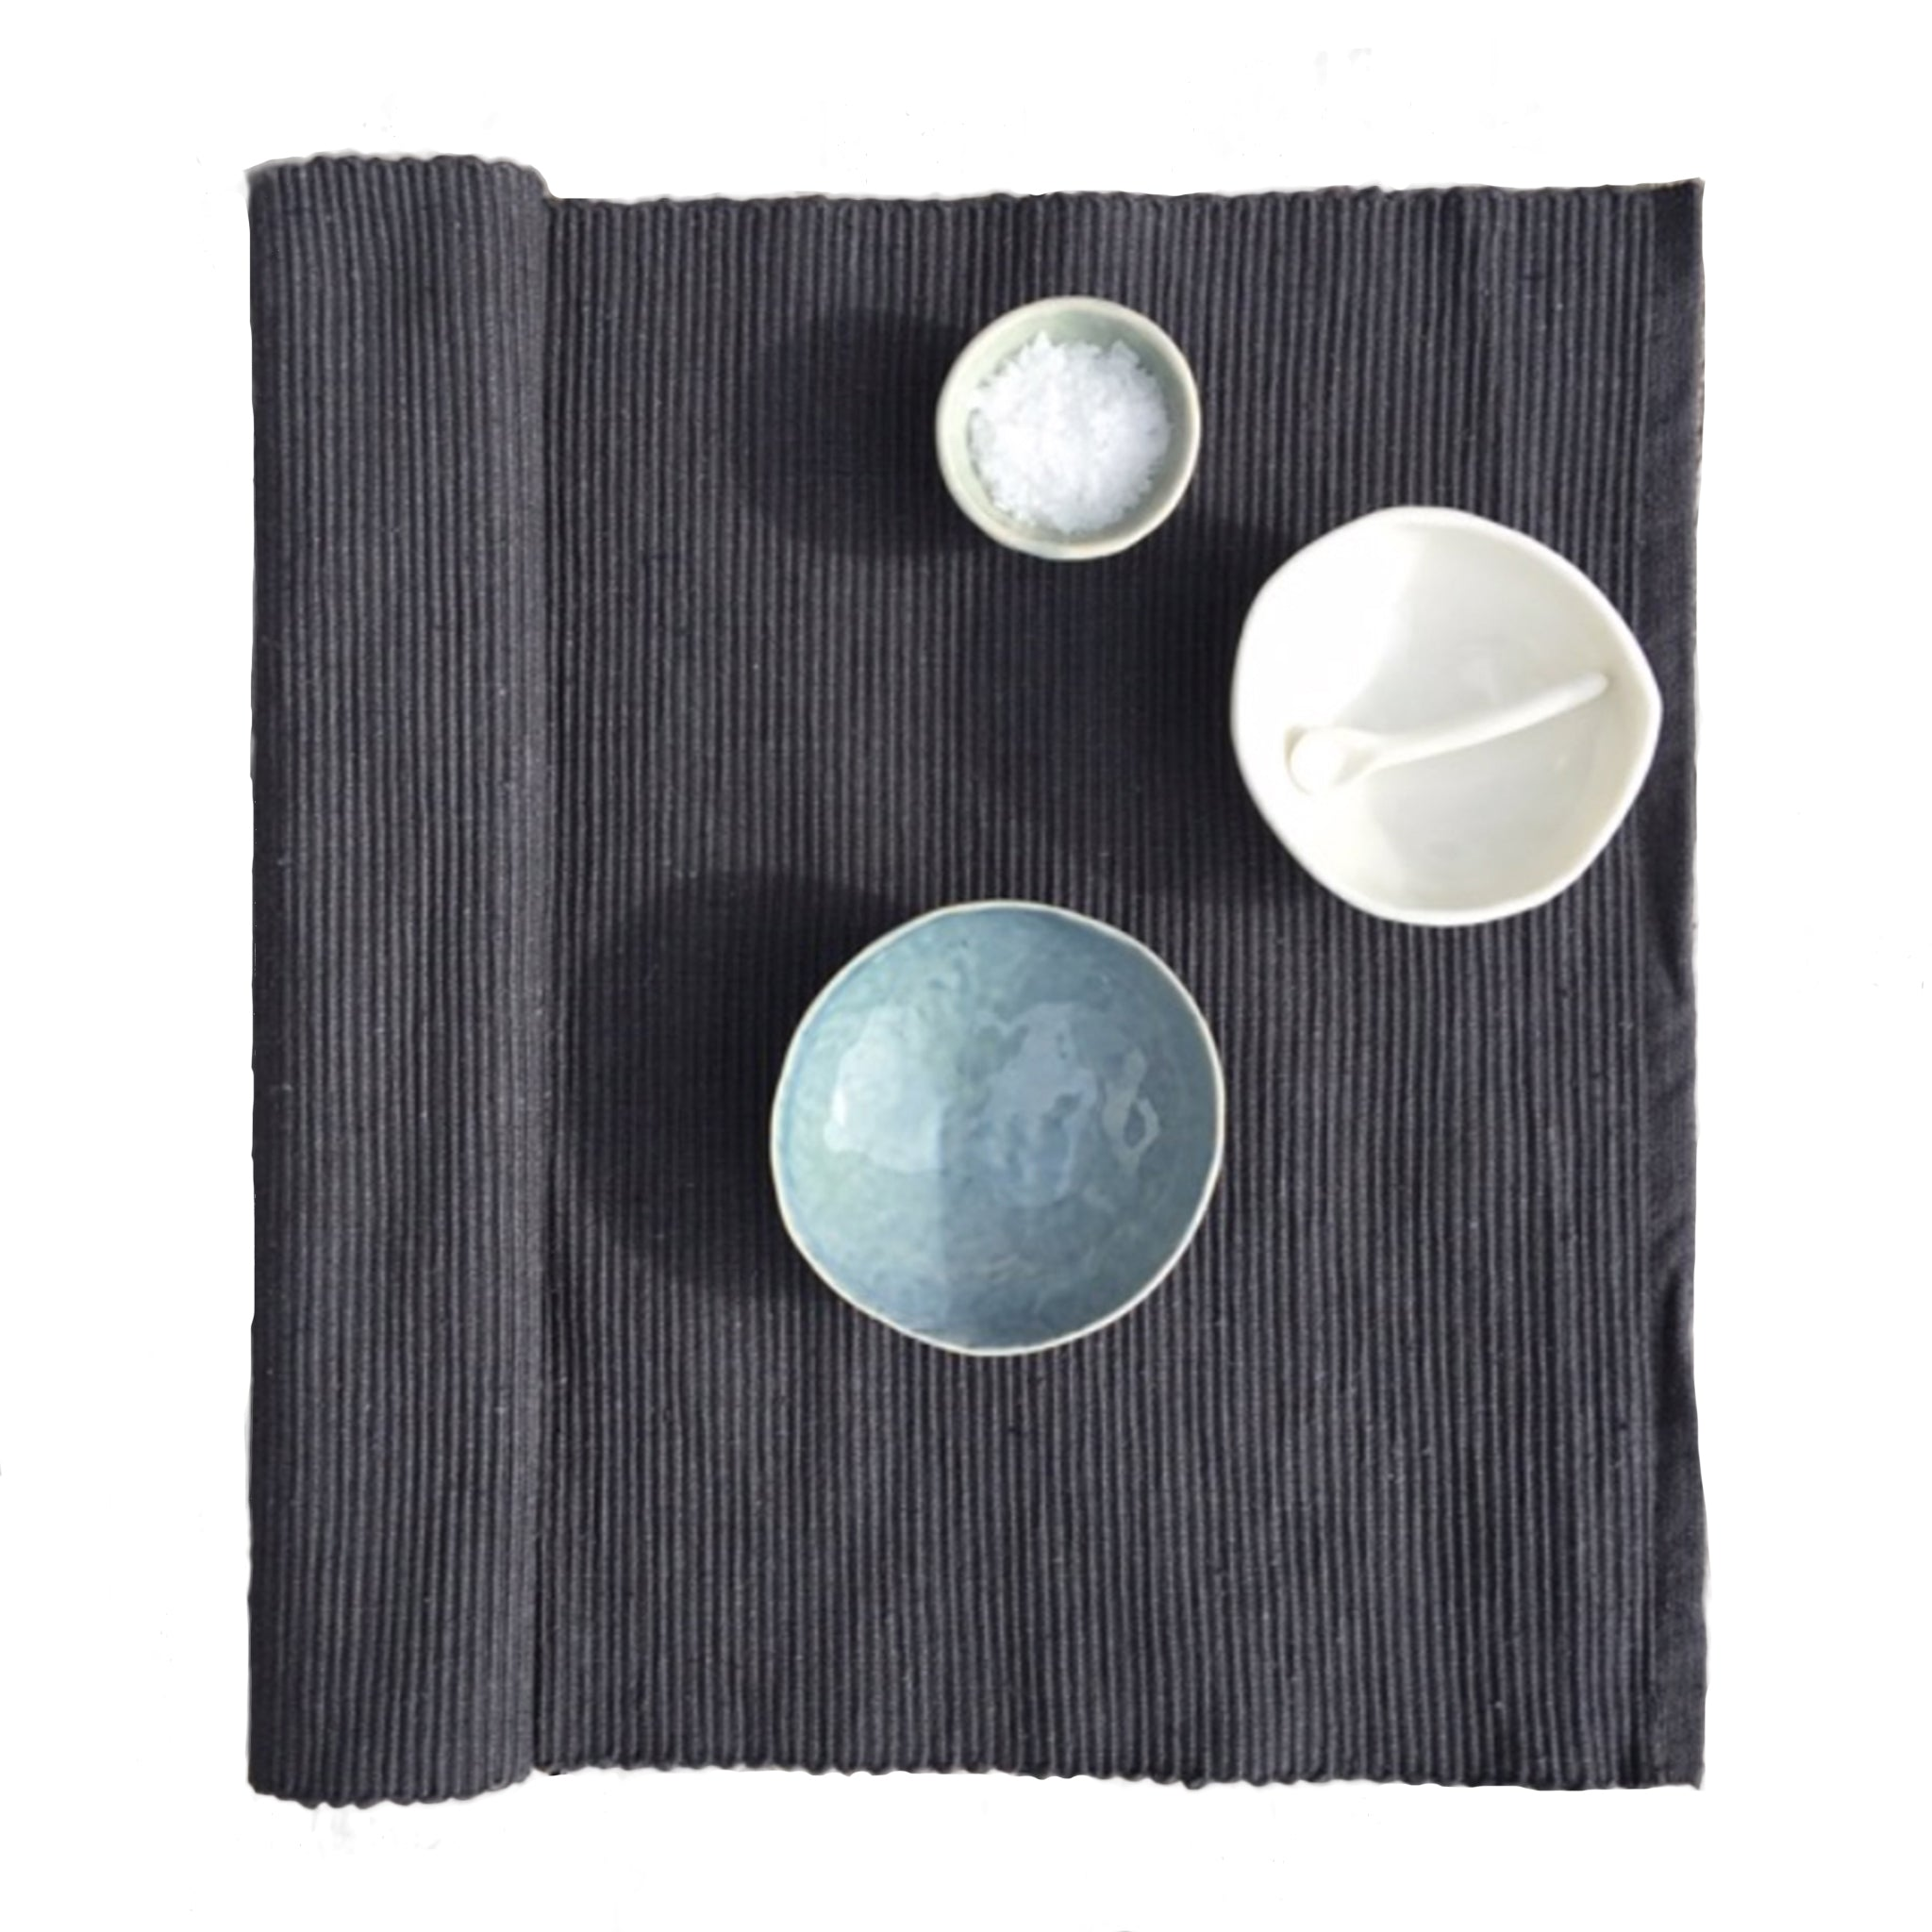 Placemats Cotton Rib - Set of 6 - Charcoal